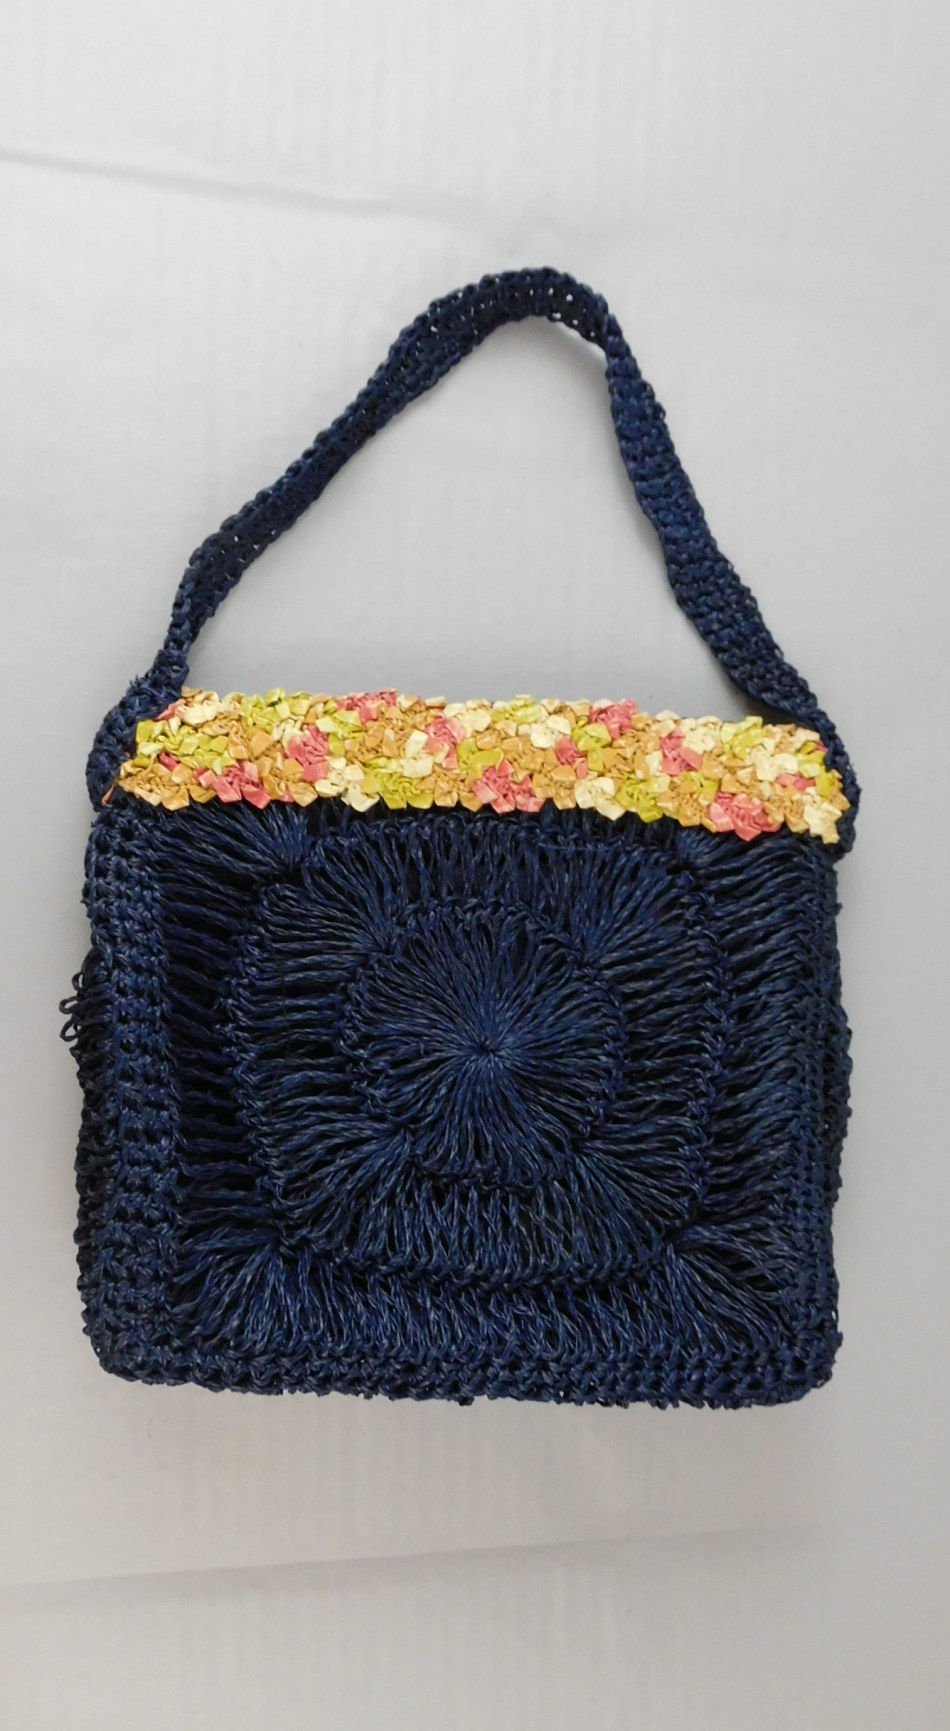 Vintage 1950s Navy Straw Purse with Colorful Straw Ribbon